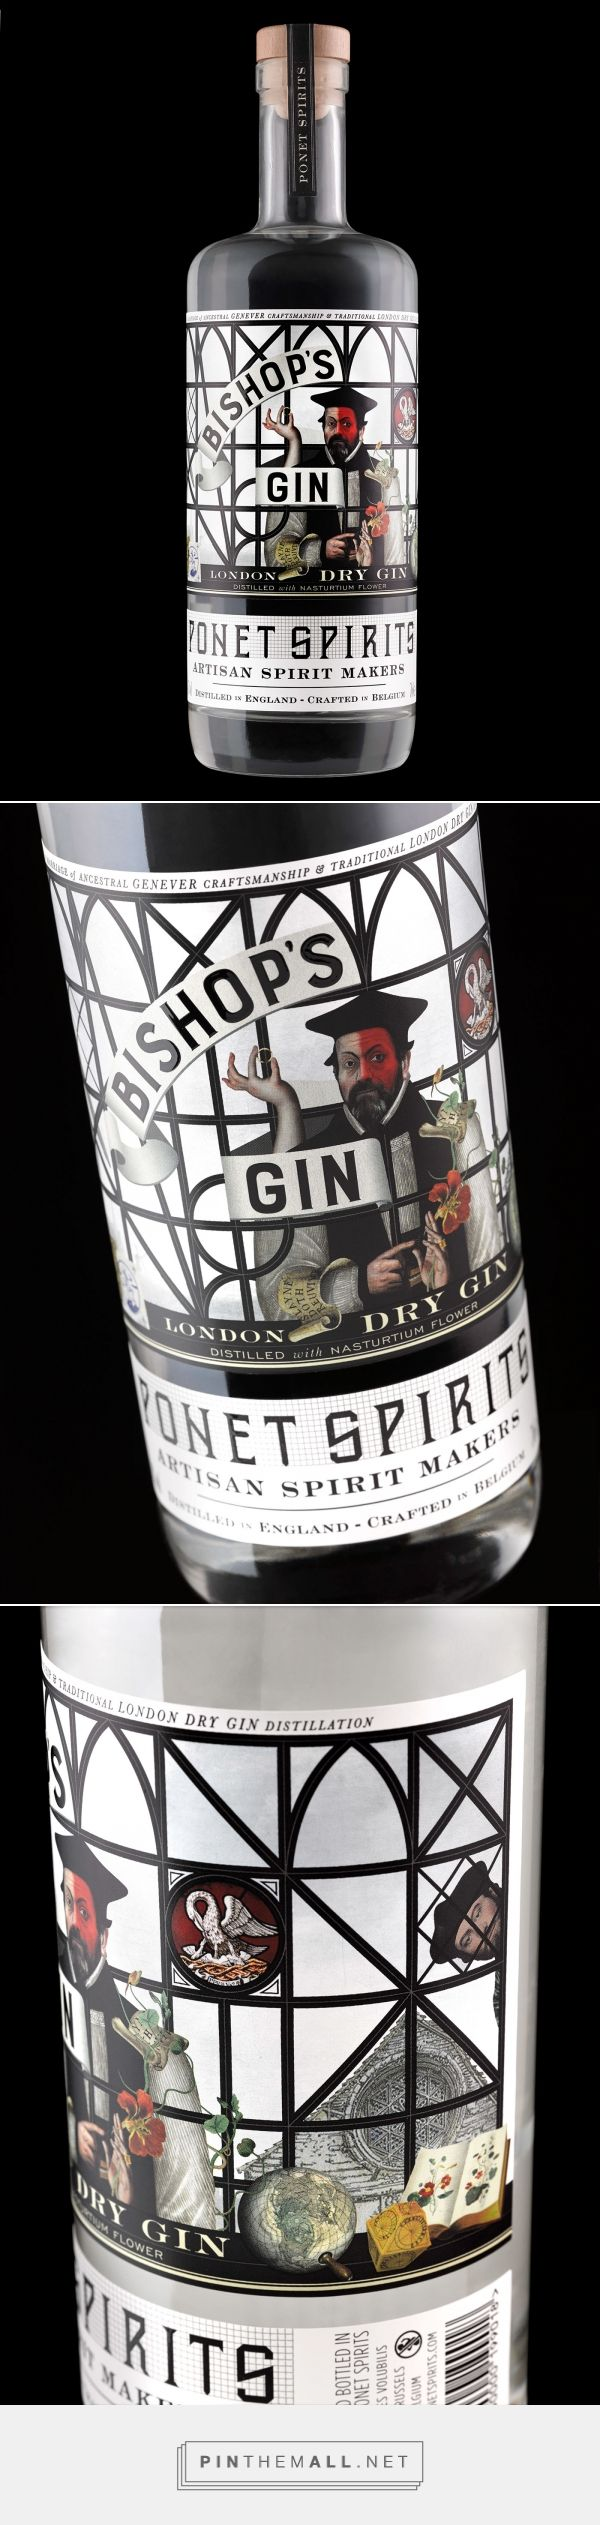 Graphic design, illustration and packaging for Ponet Bishop's Gin on Behance by Stranger & Stranger New York, NY curated by Packaging Diva PD. Ponet's ancestor was a real bishop, a maverick who turned his head from the church (hence the red face) and advocated for marriage in the clergy (hence the ring).